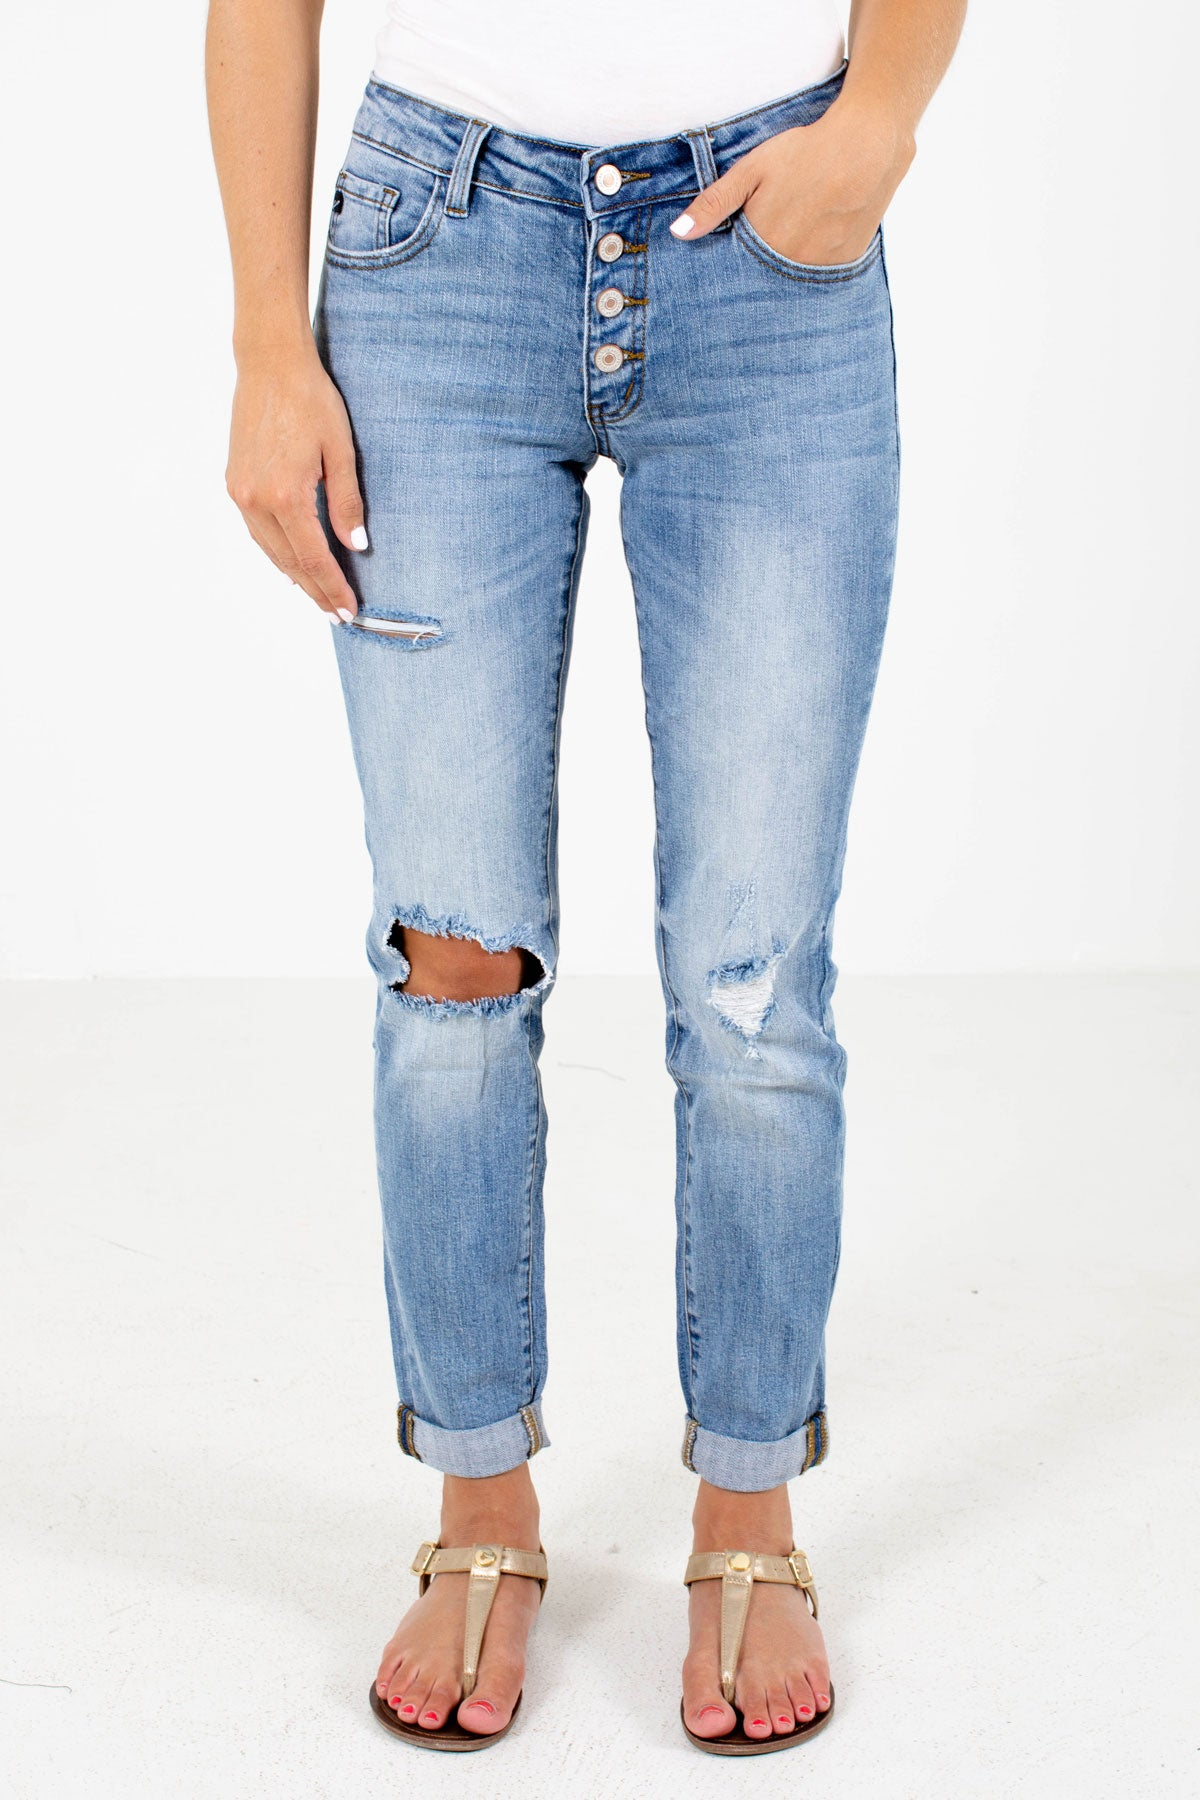 Blue Button-Up Front Boutique KanCan Jeans for Women